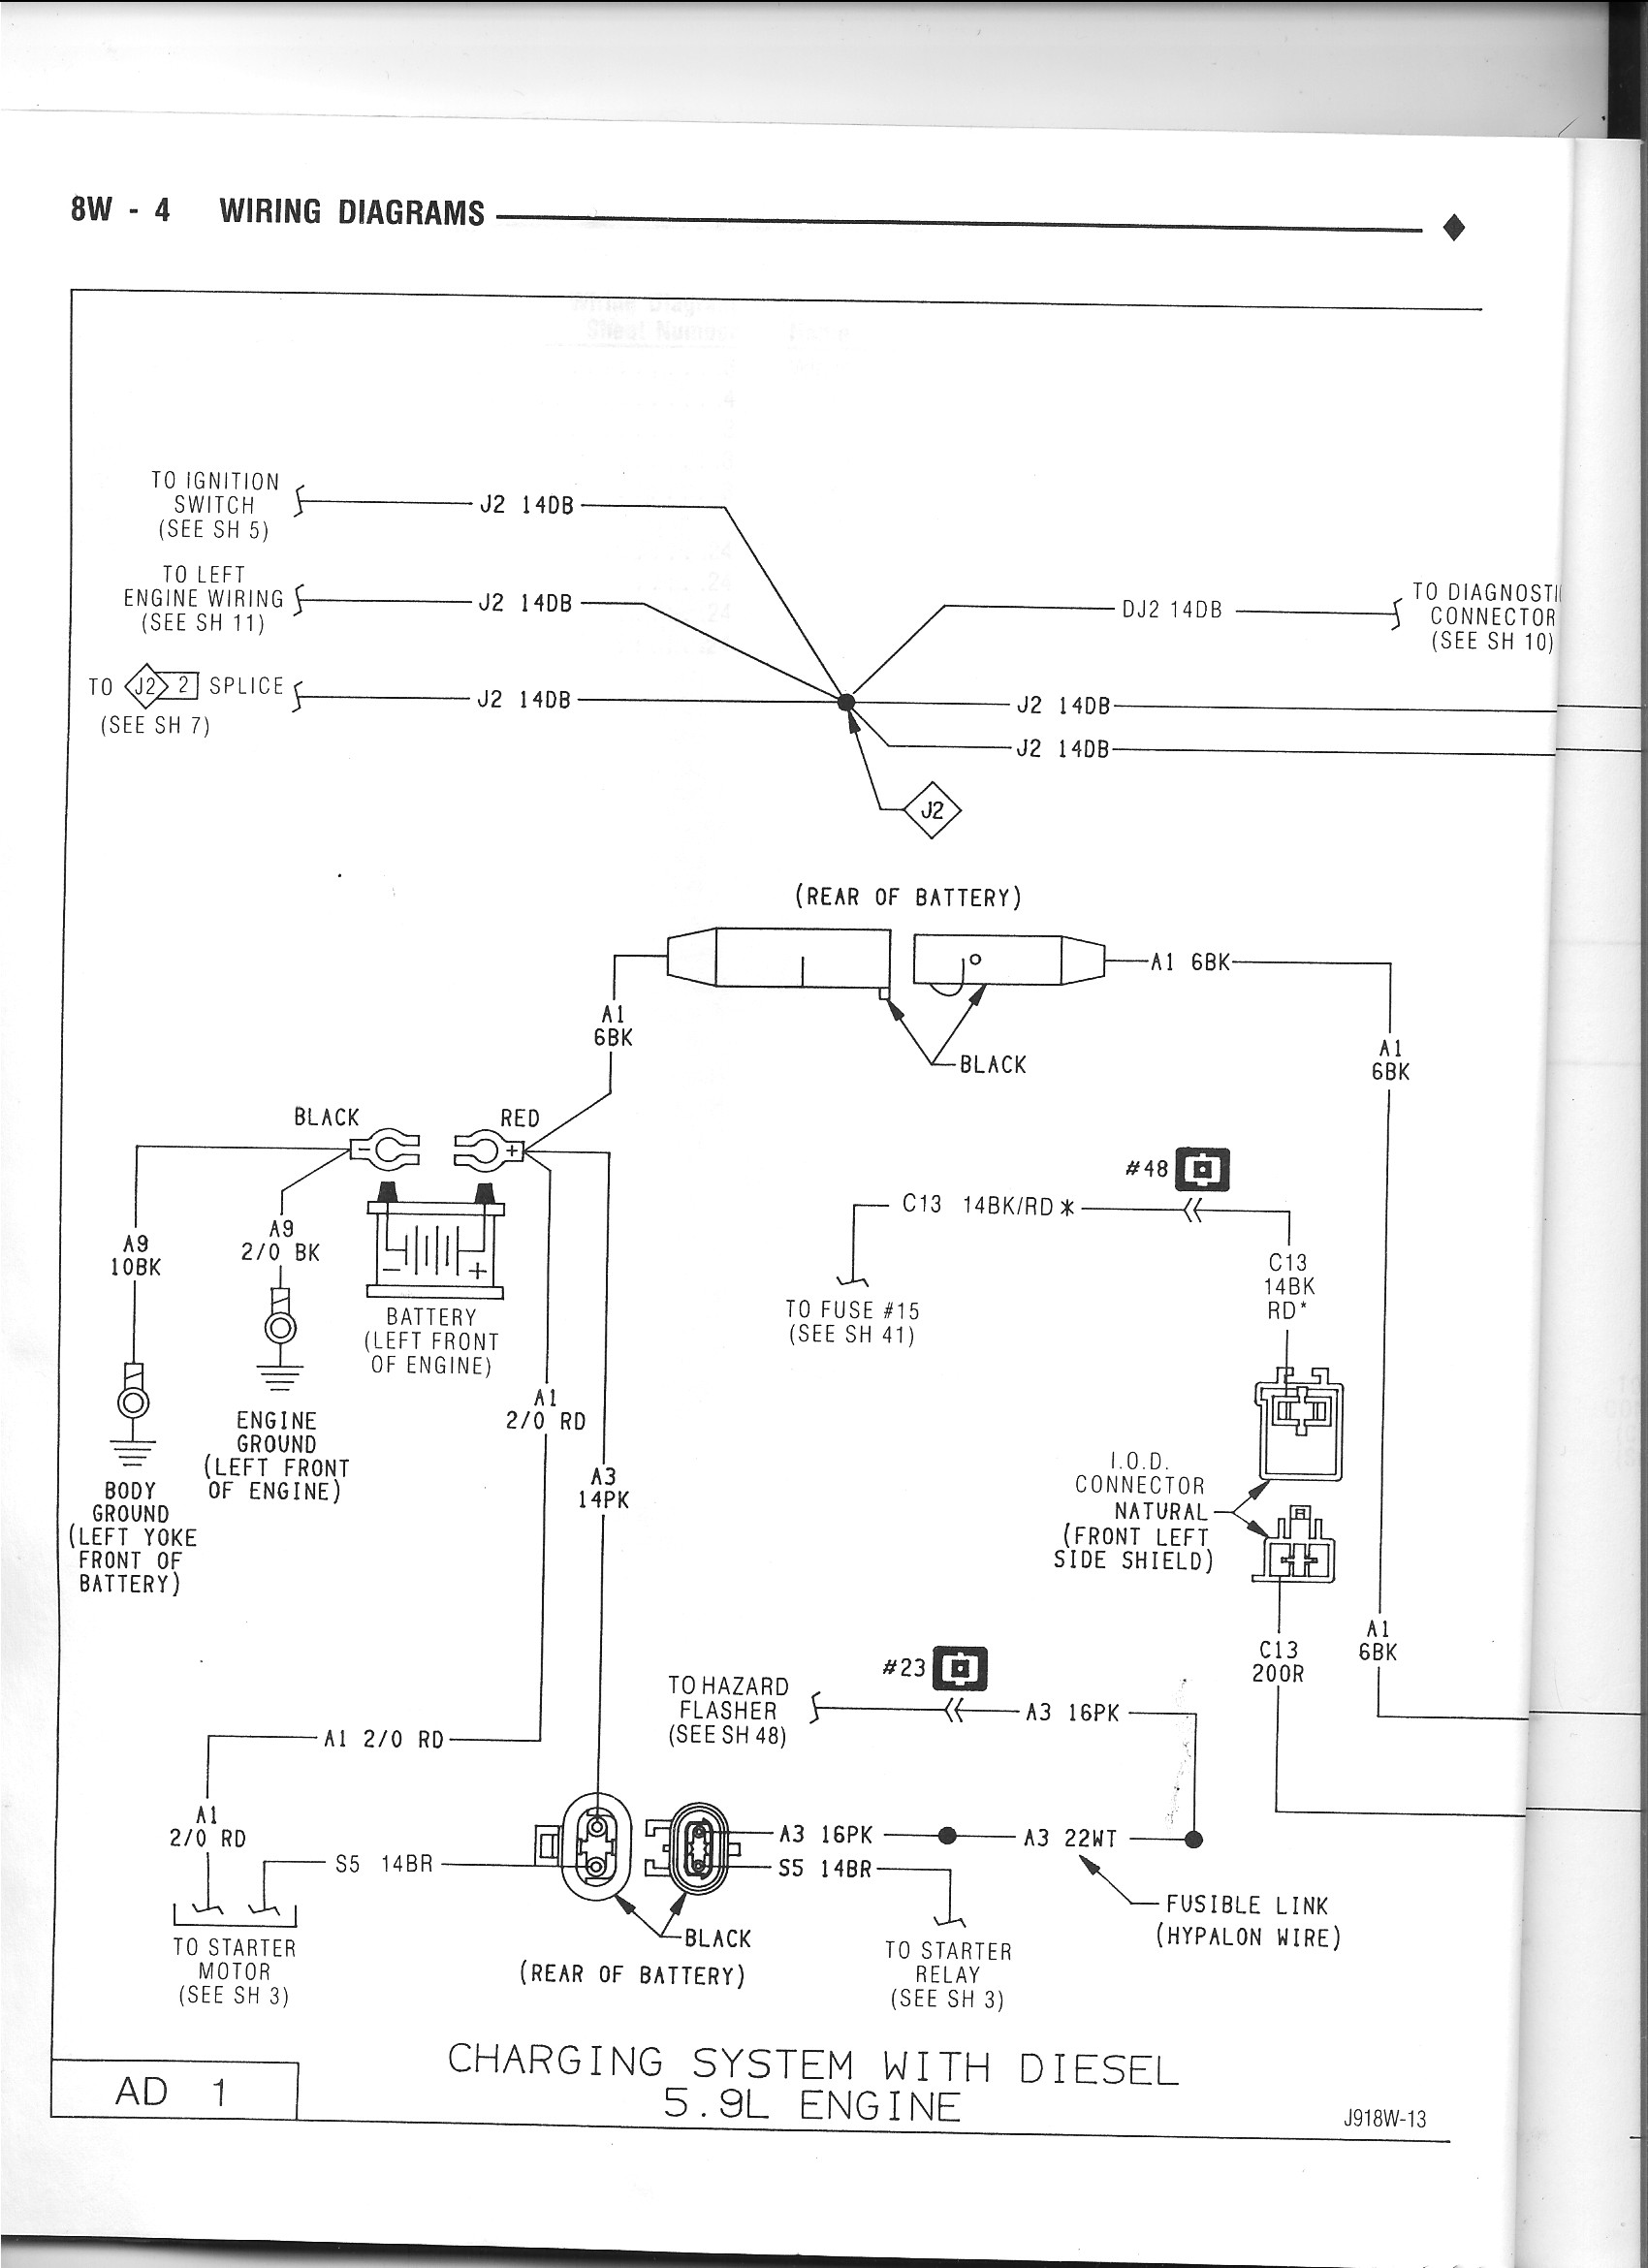 dodge dakota alternator wiring diagram color coded automotive diagrams library